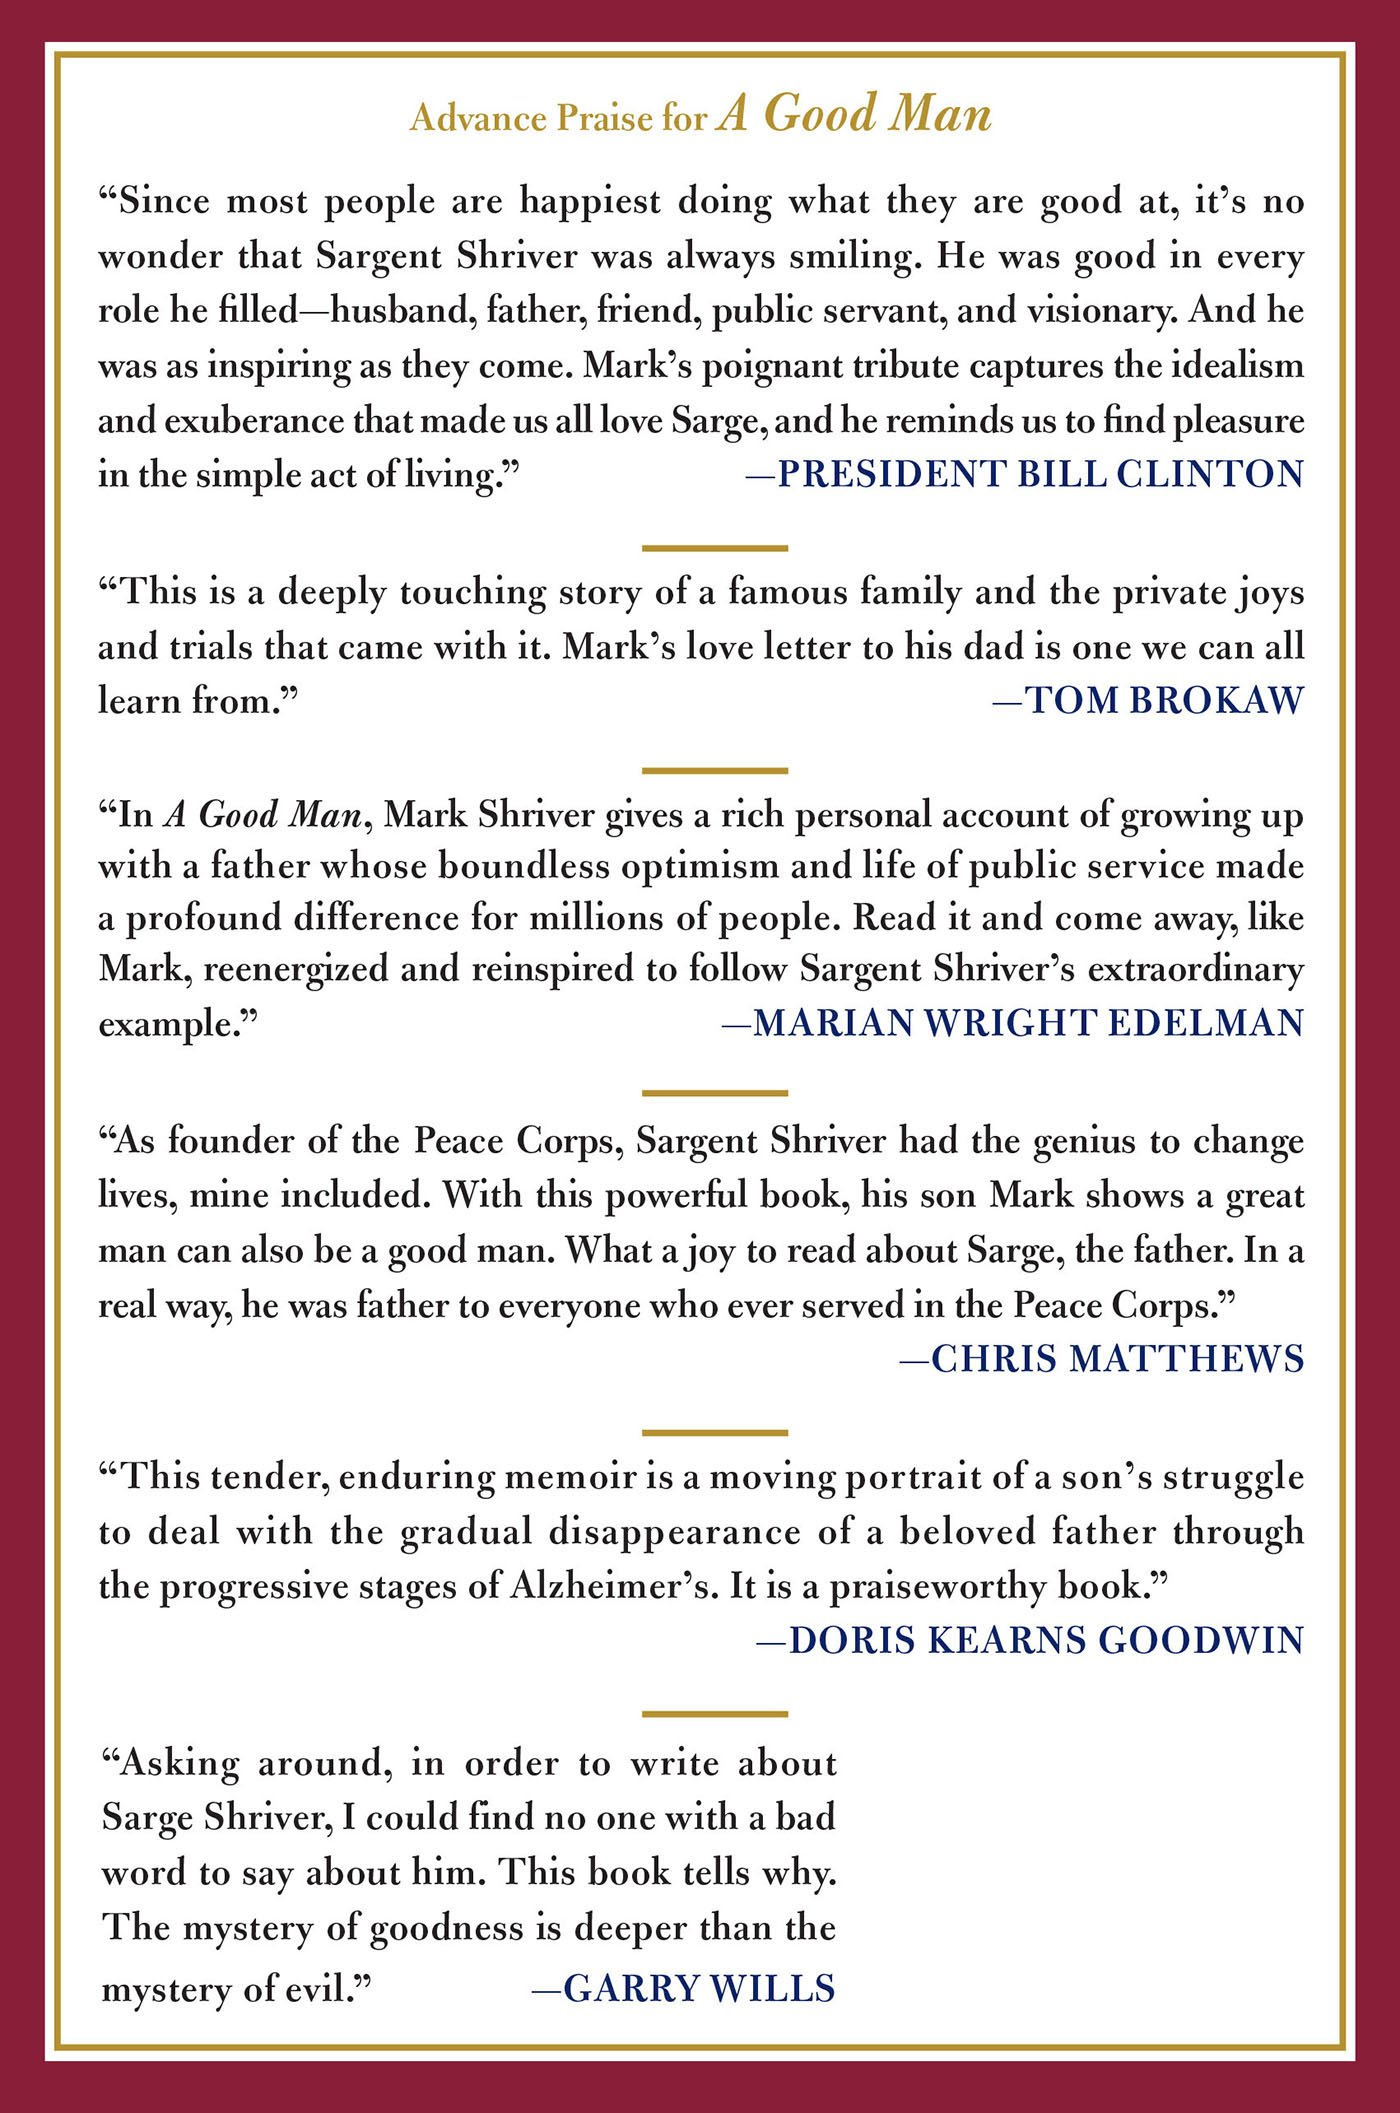 A good man rediscovering my father sargent shriver mark shriver a good man rediscovering my father sargent shriver mark shriver 9780805095302 amazon books aljukfo Choice Image